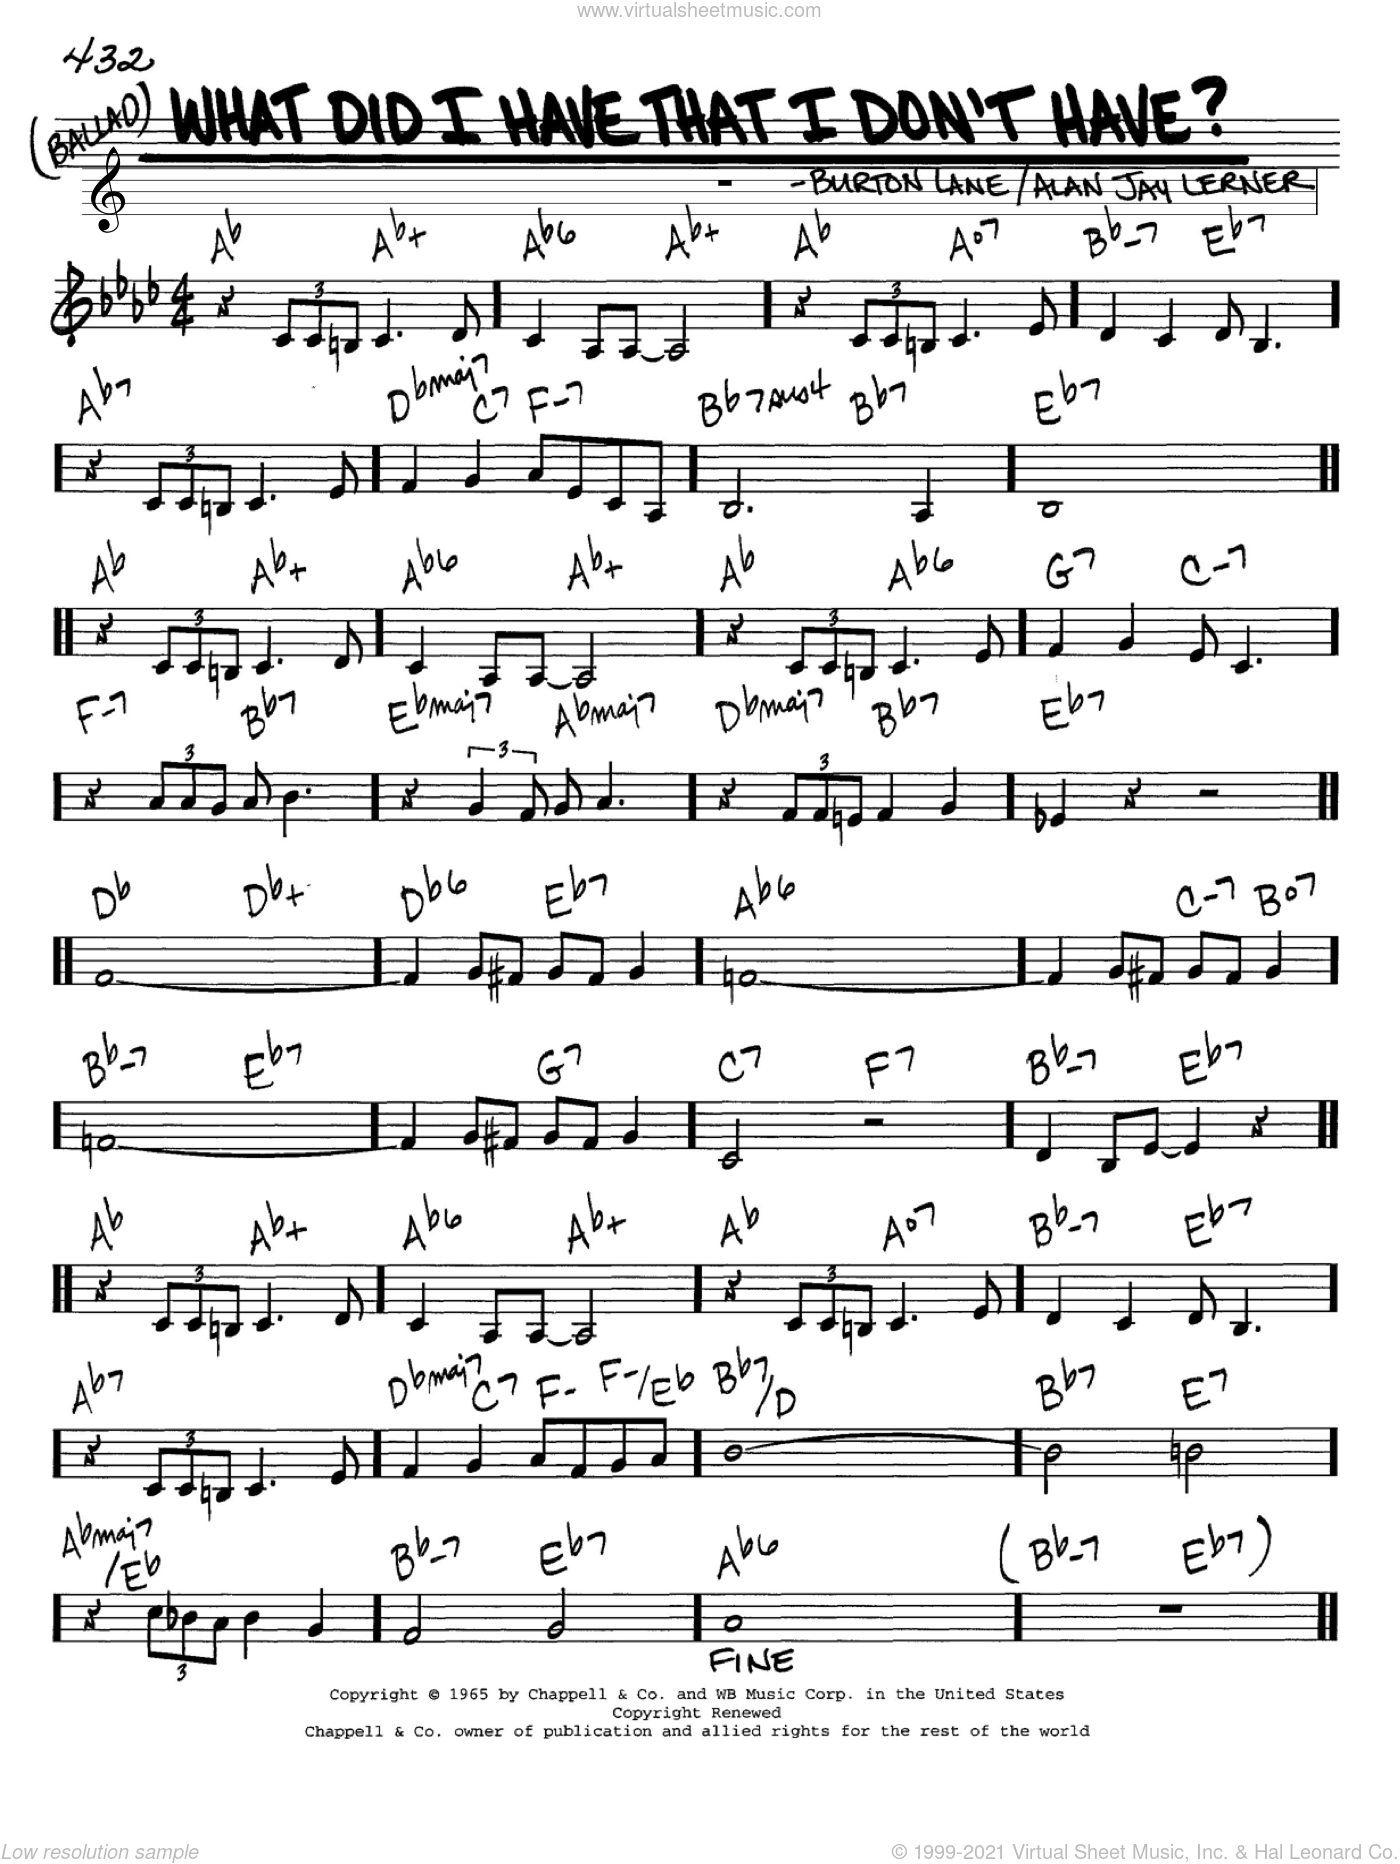 What Did I Have That I Don't Have? sheet music for voice and other instruments (C) by Burton Lane